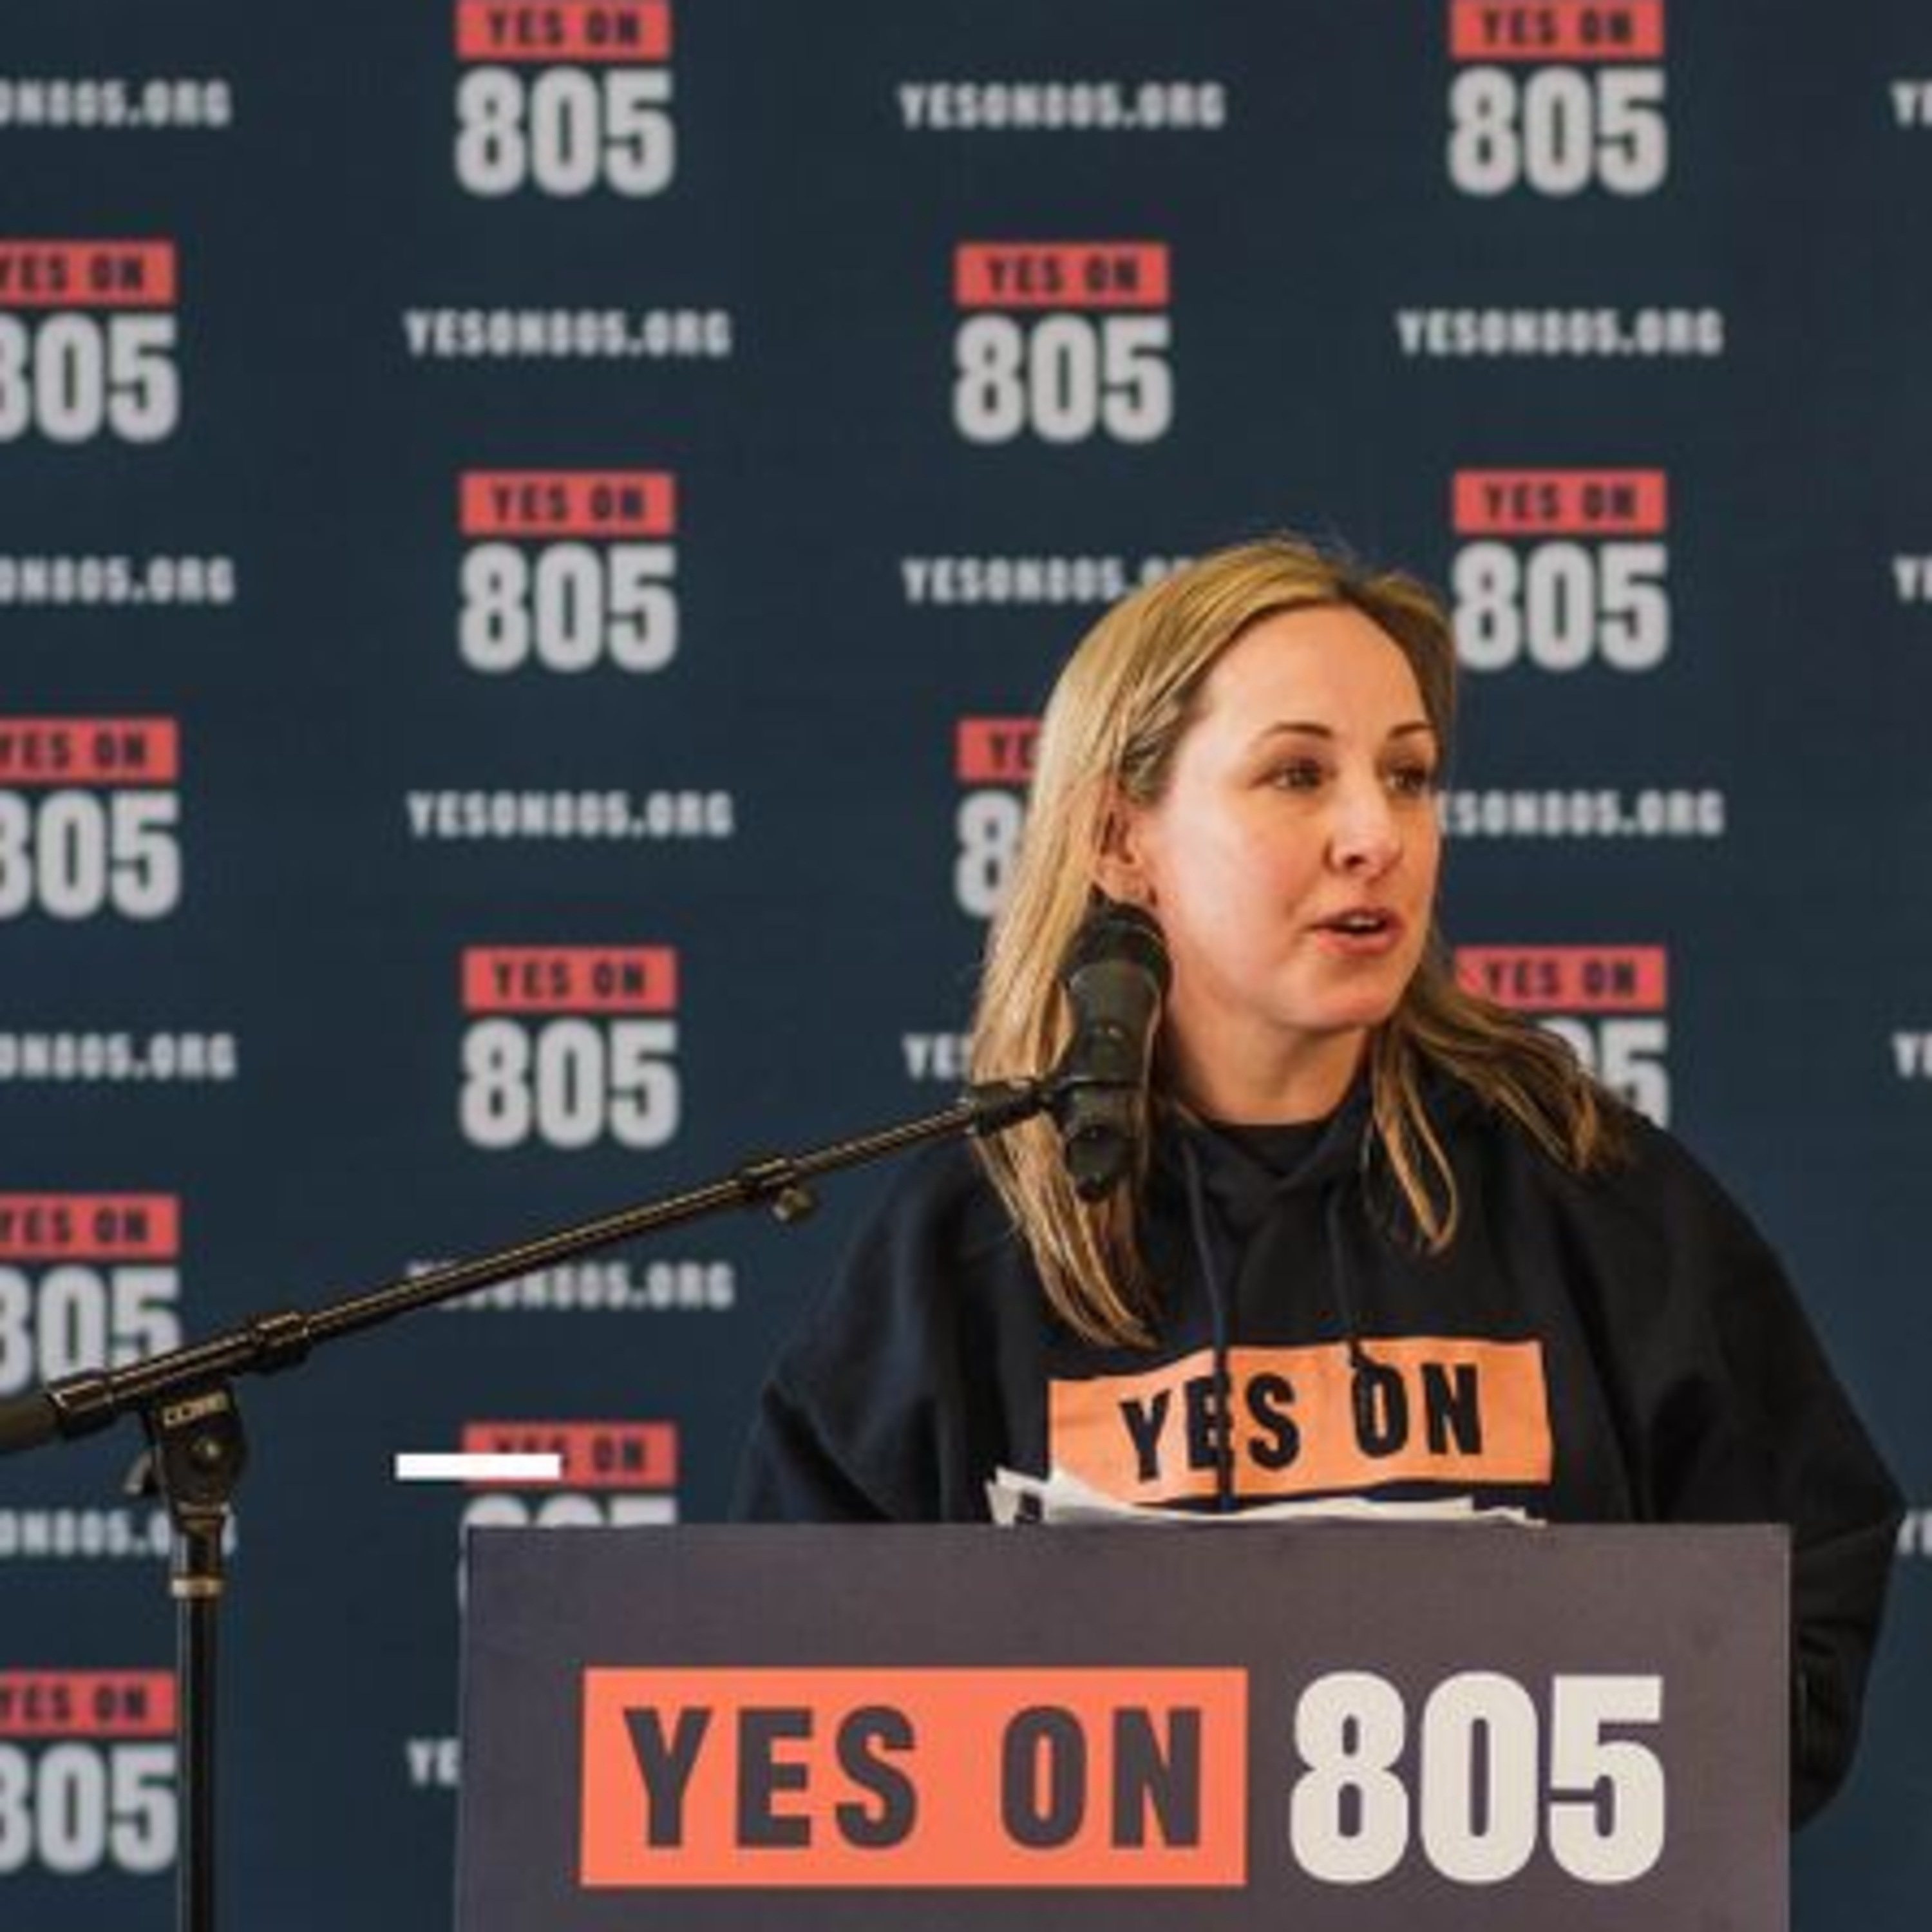 Mental Health Download: Exploring Mental Illness, Suicide, Homelessness and Incarceration - Vote Yes on SQ 805 & Help End Decades-Long Prison Sentences for Nonviolent Crimes